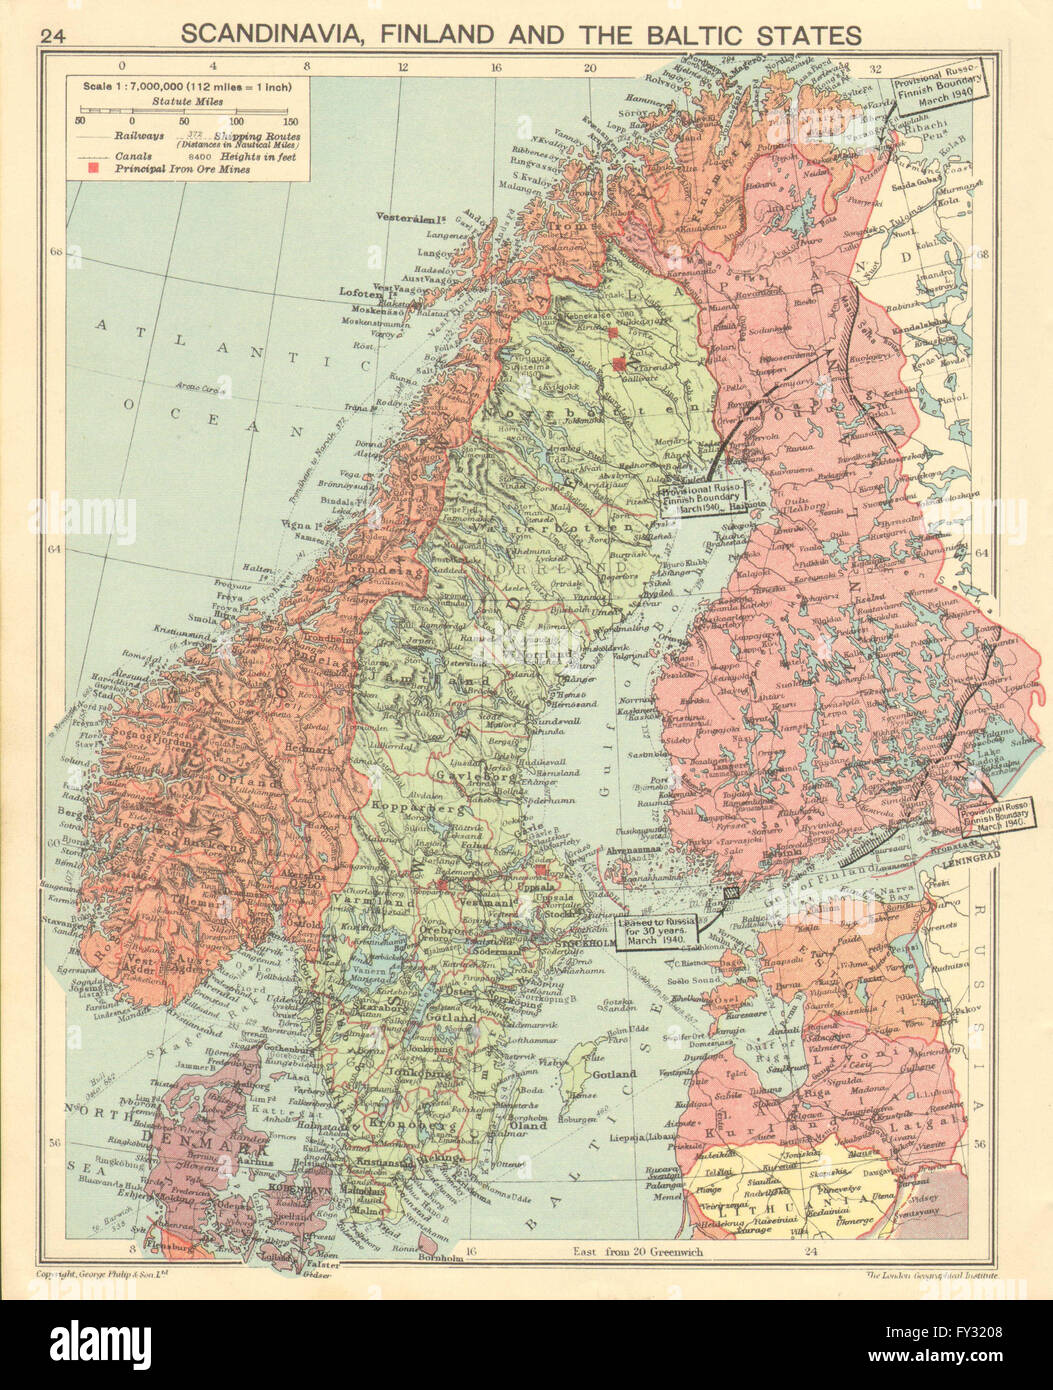 WORLD WAR TWO: Russo-Finland borders March 1940 post Winter War. Hango, 1940 map - Stock Image